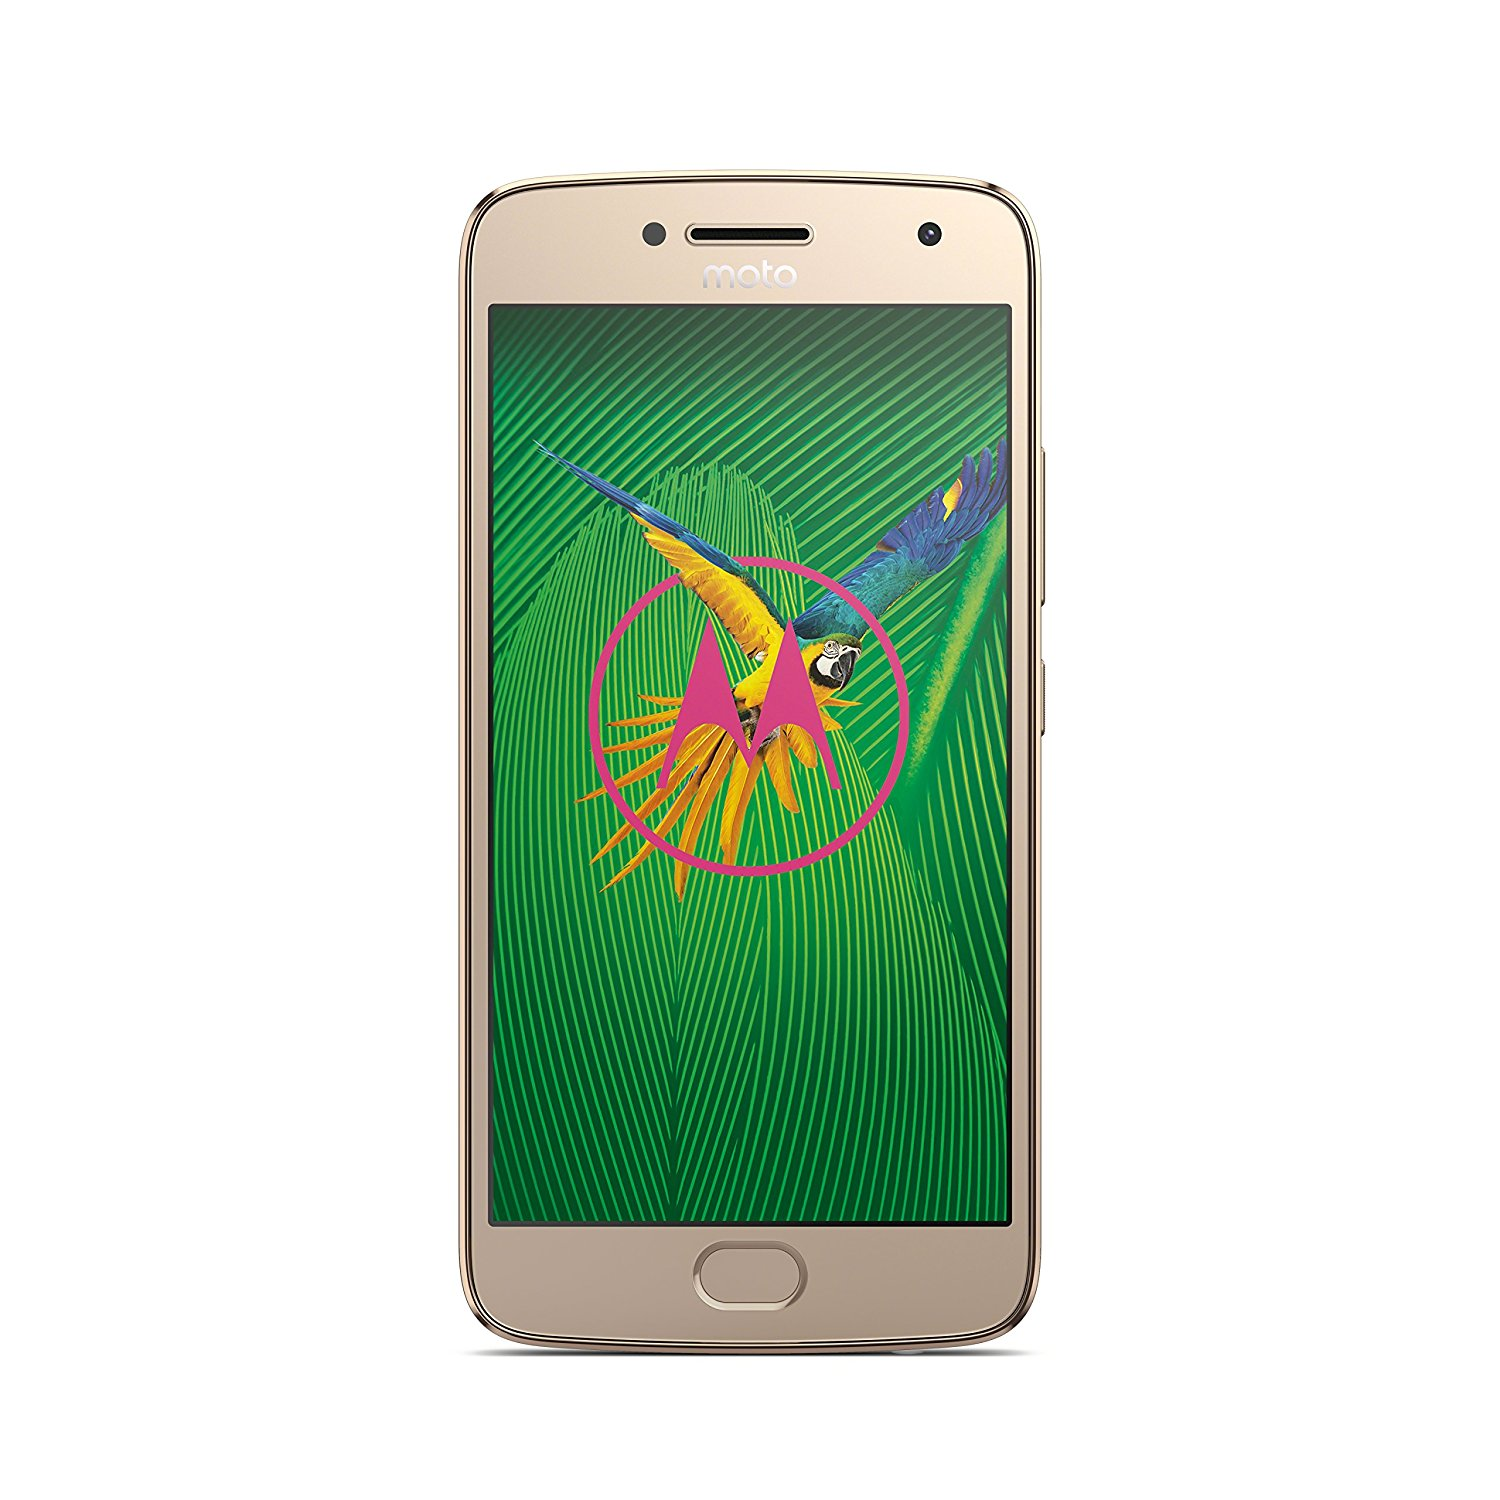 Motorola Moto G5 Plus Smartphone amazon